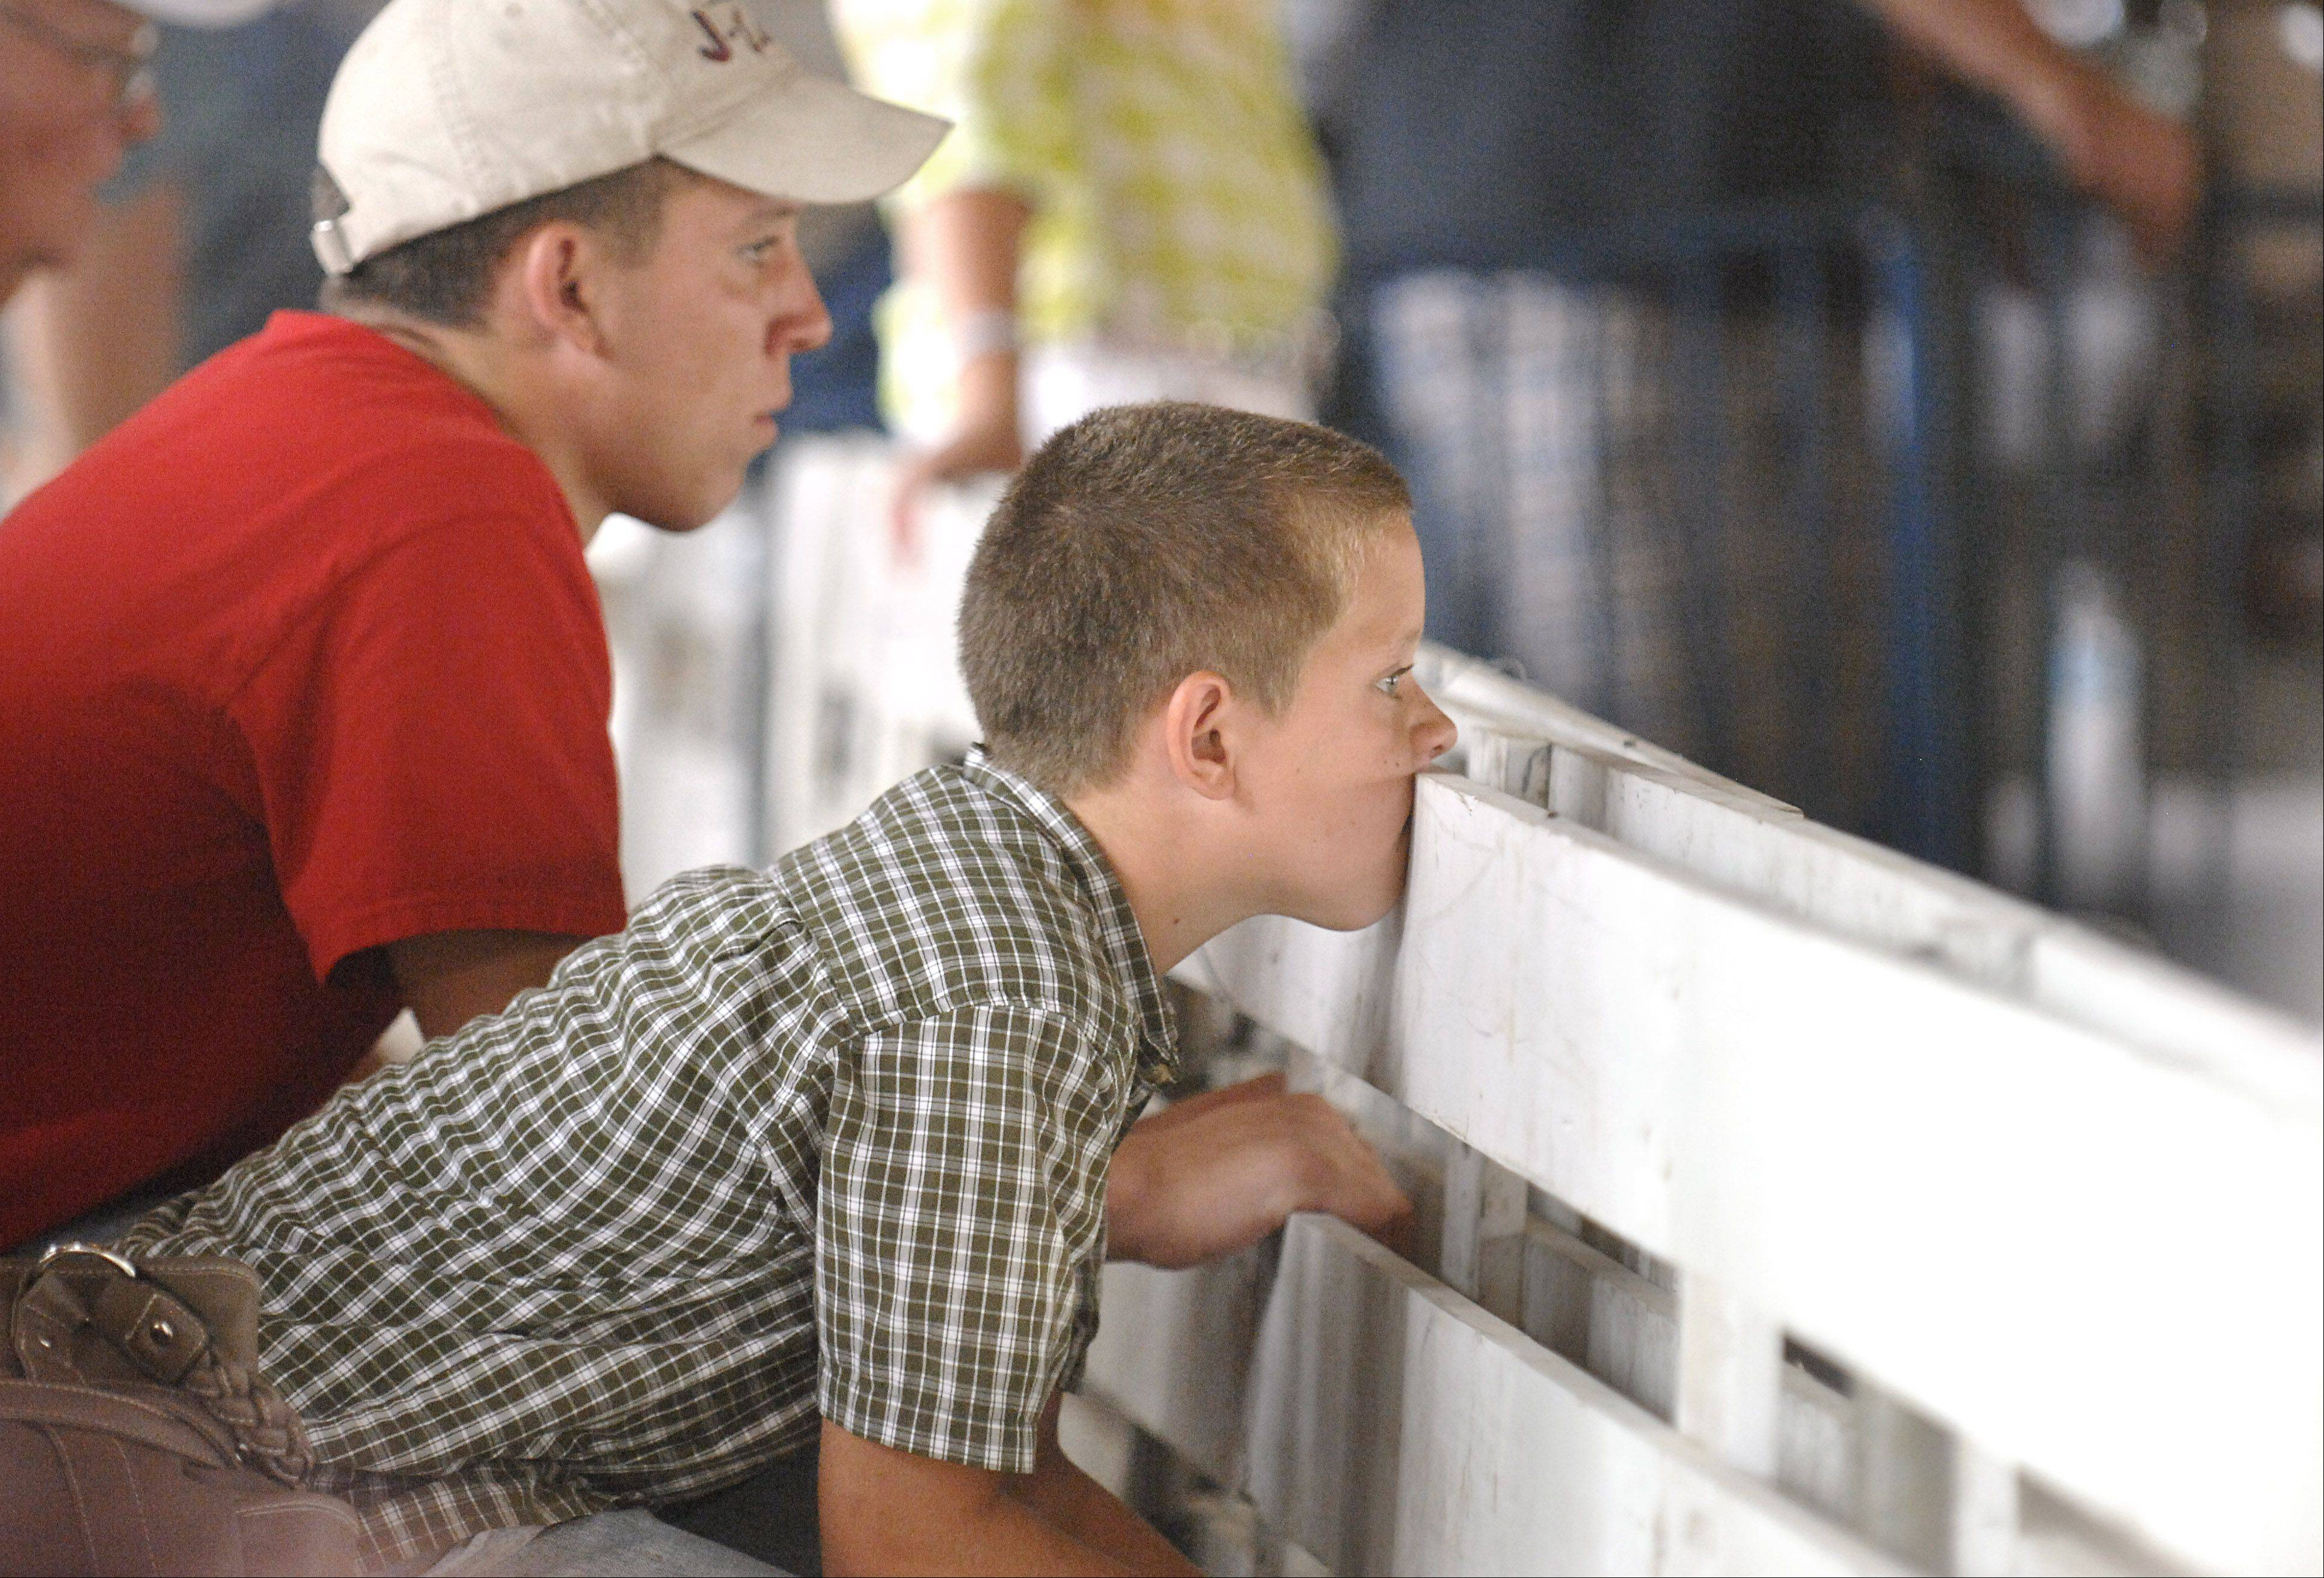 Austin Risley, 10, of Esmond, Ill., watches pig judging during the second day of the Kane County Fair on July 19. Risley, along with his brother, Zac, 18, left, show steers but were helping out friends from Naperville who were showing their pigs.